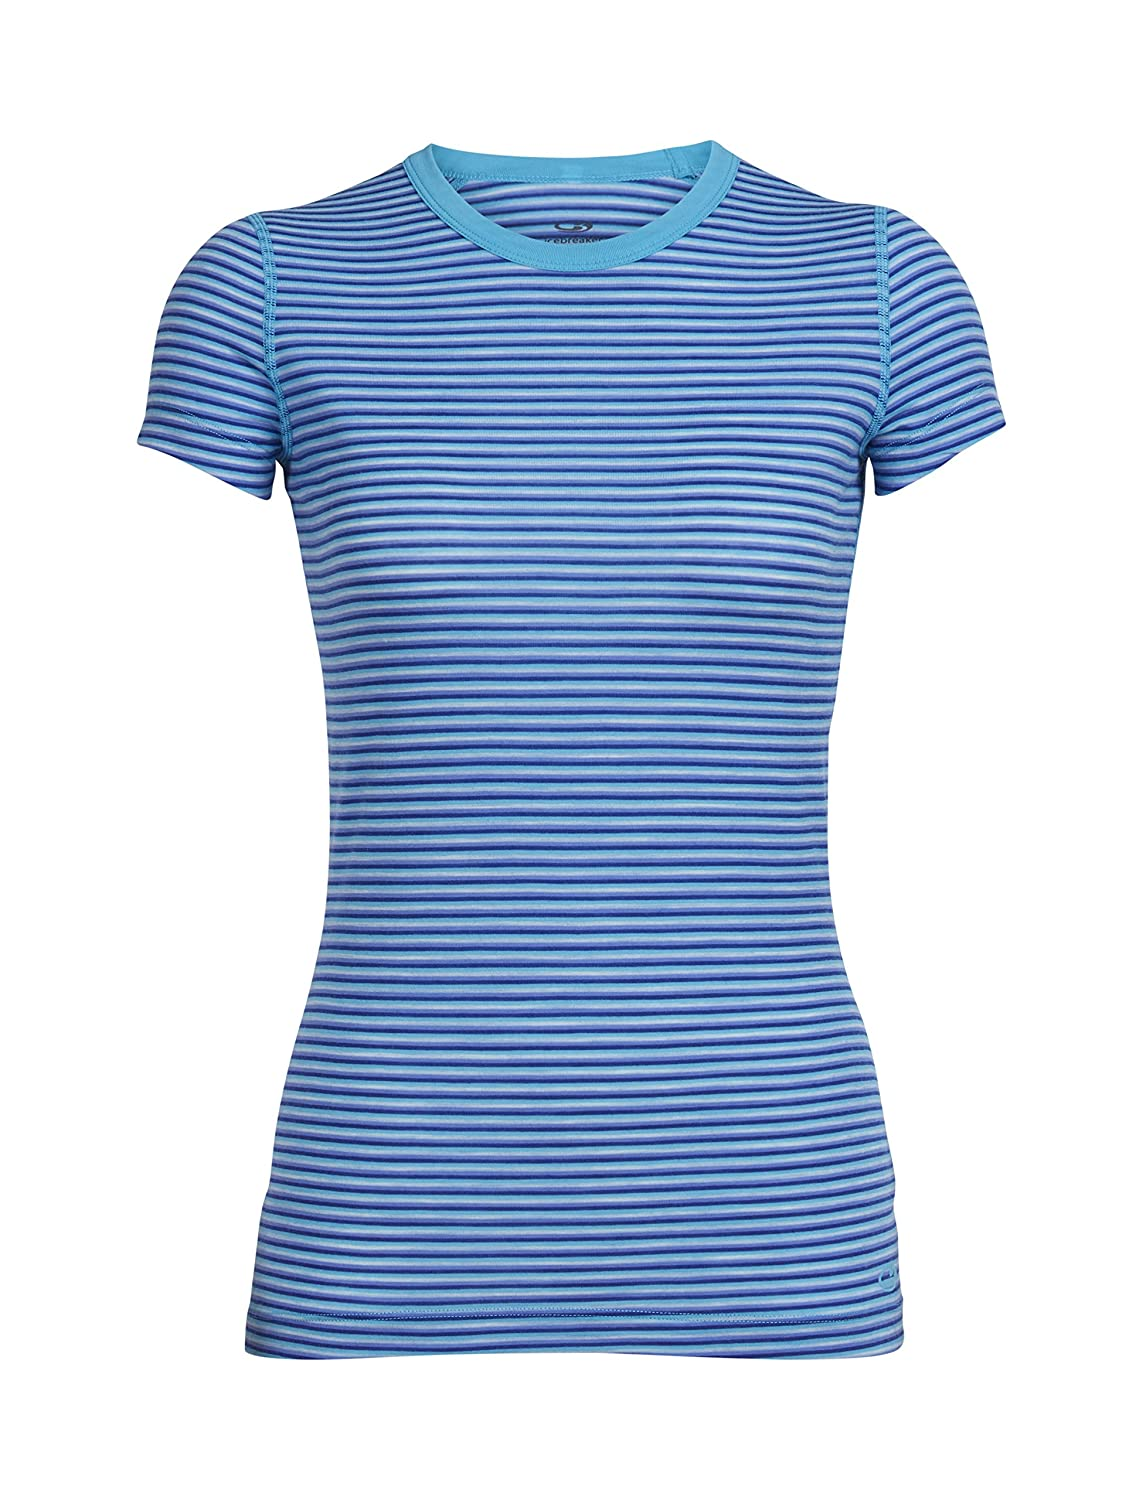 Icebreaker Sprite Crewe Stripe Women's Short Sleeve T-Shirt - AW16 103022403S